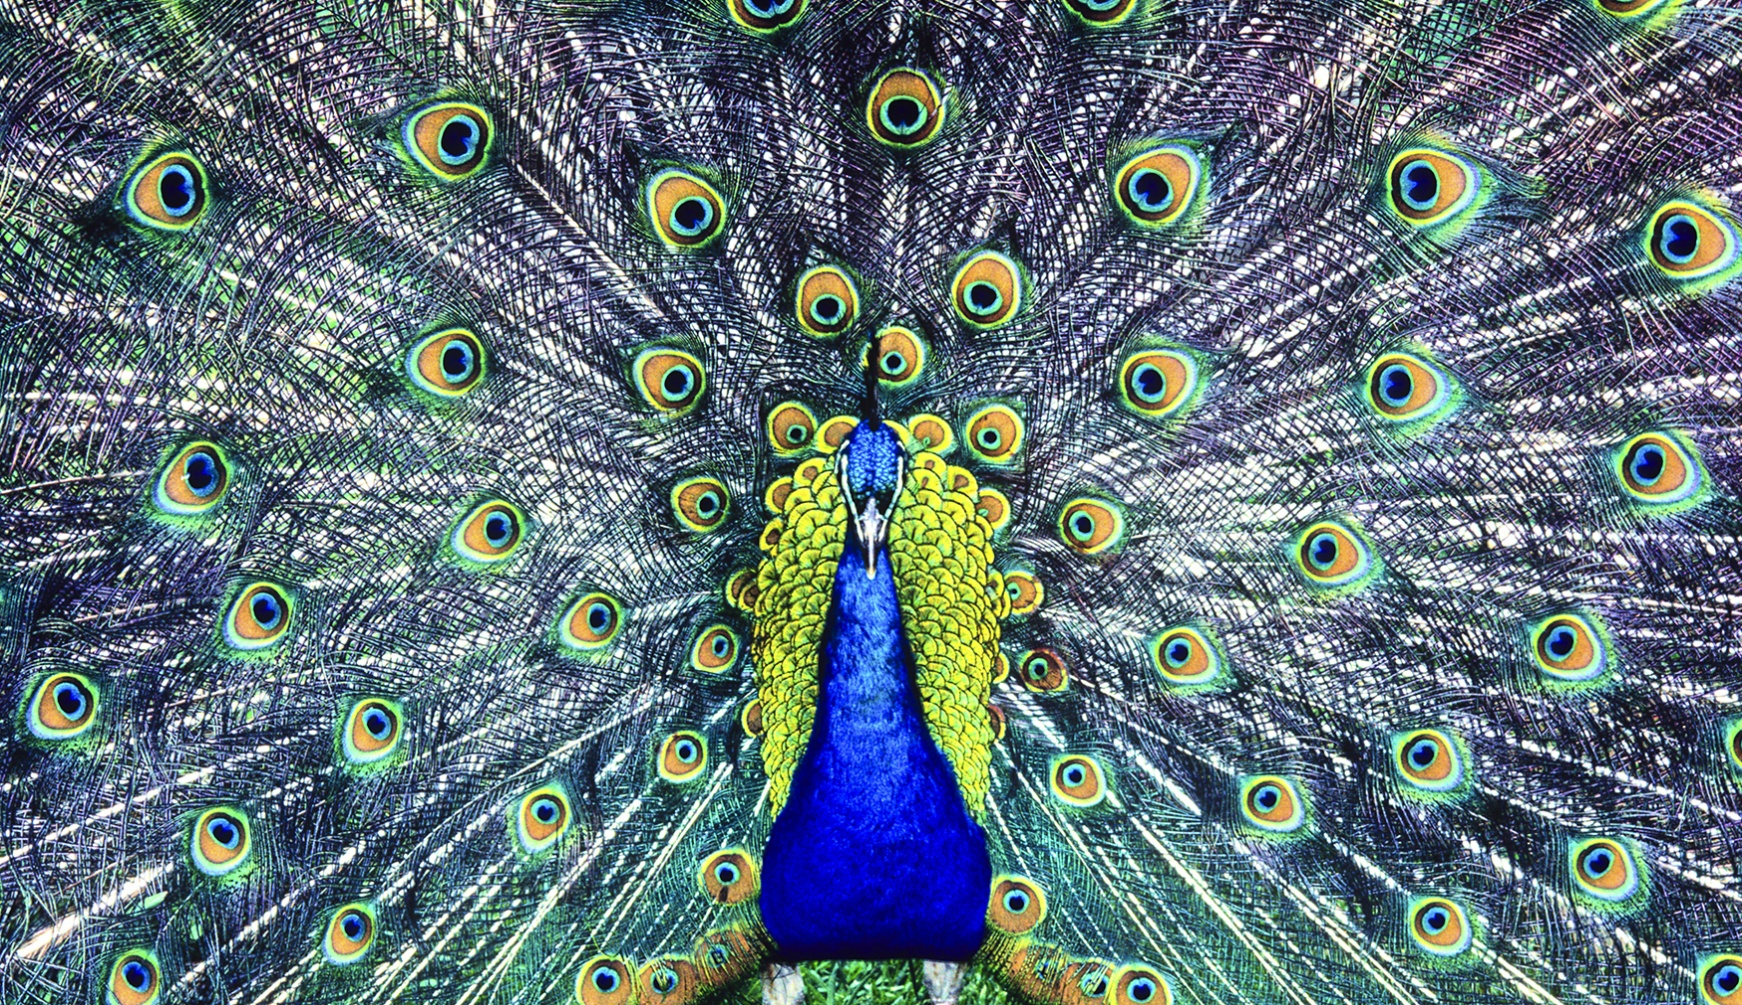 If a peacock loses his tail feathers, do they grow back